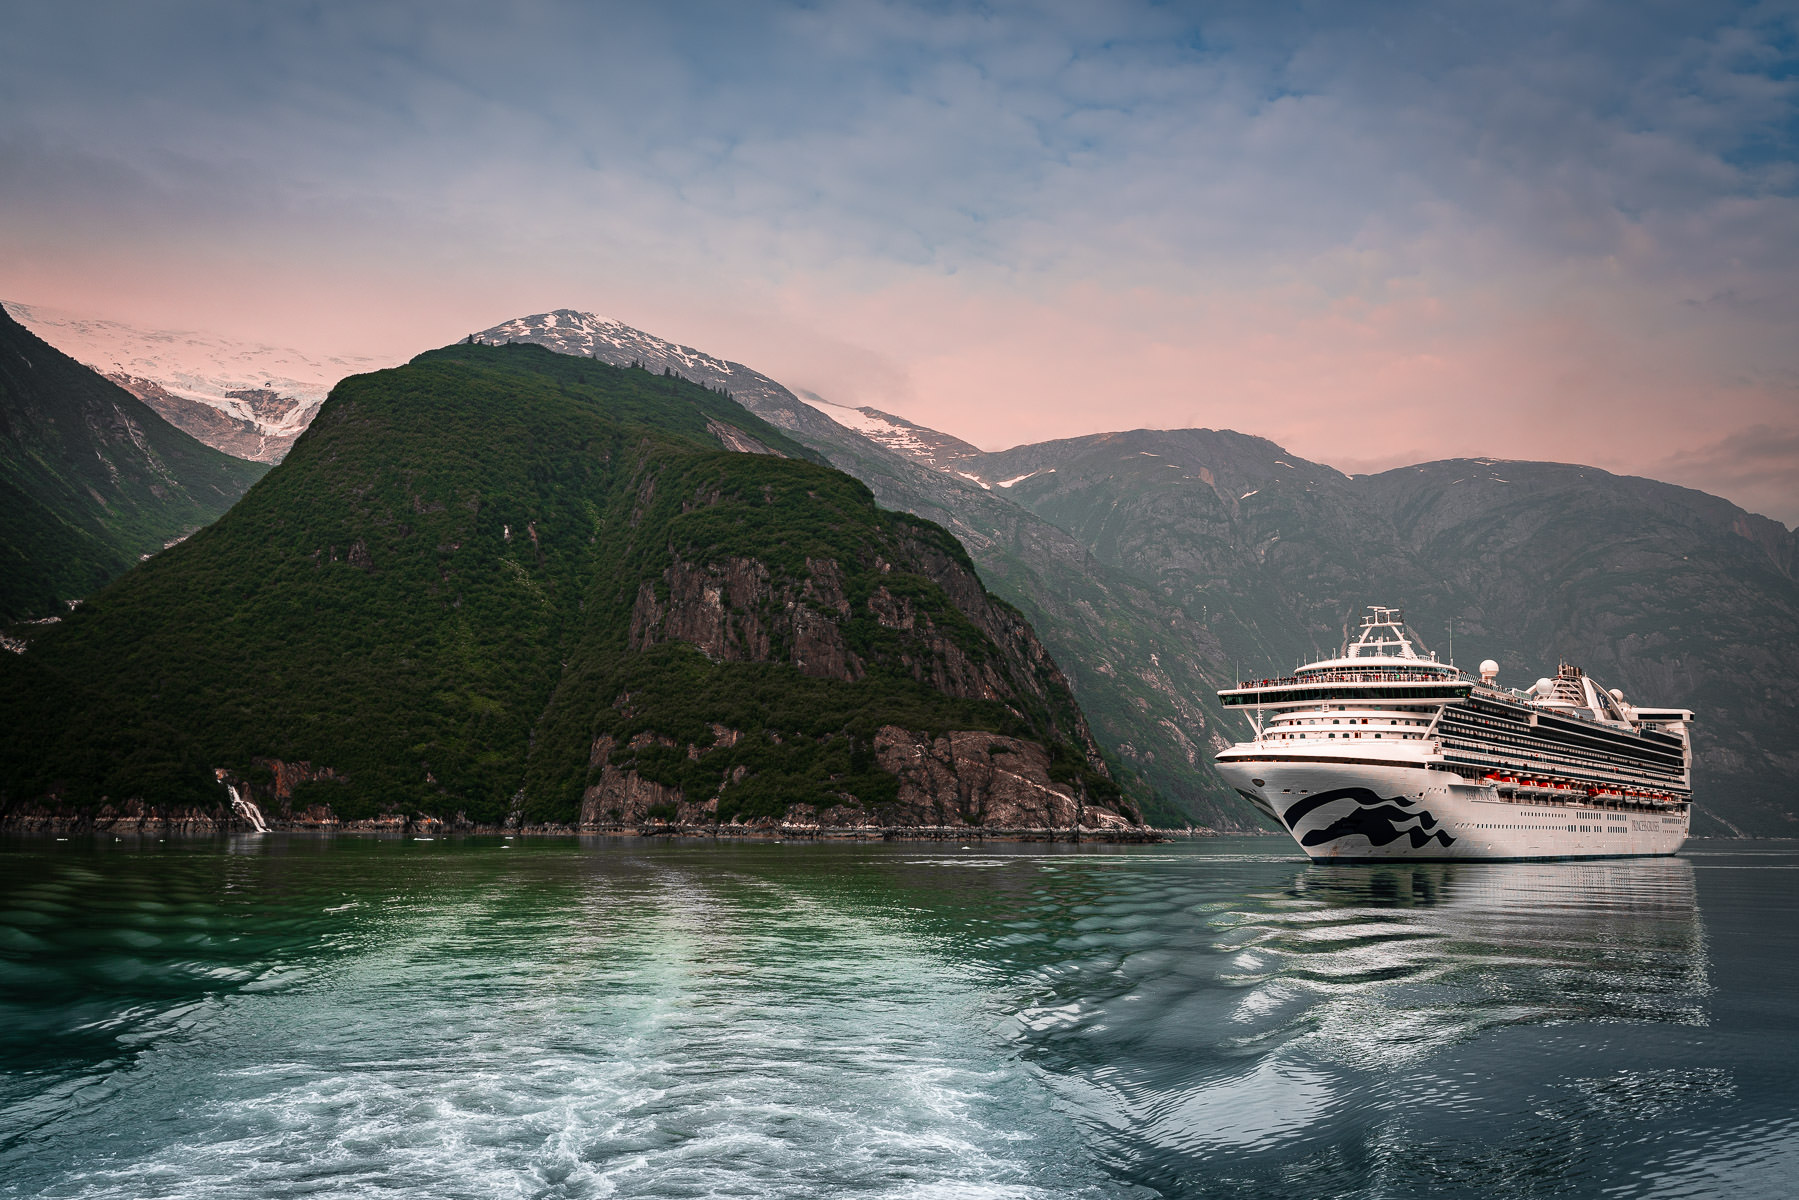 The cruise ship Star Princess sails Alaska's Tracy Arm Fjord.